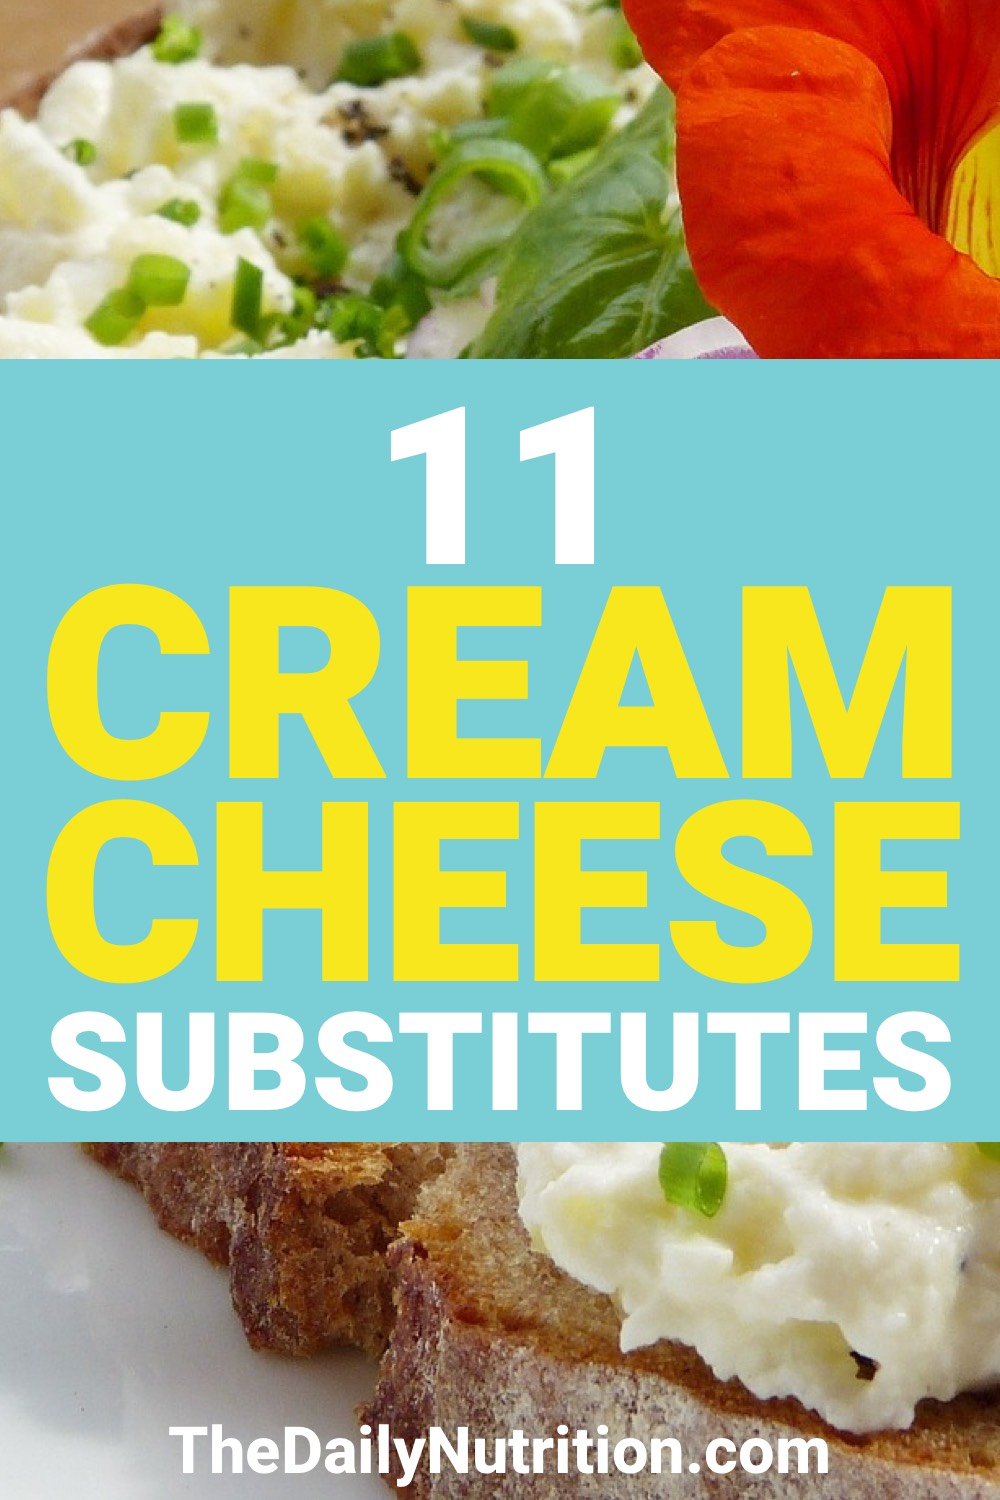 Cream cheese is great. However, some people can't always have it. Here are 11 cream cheese substitutes.